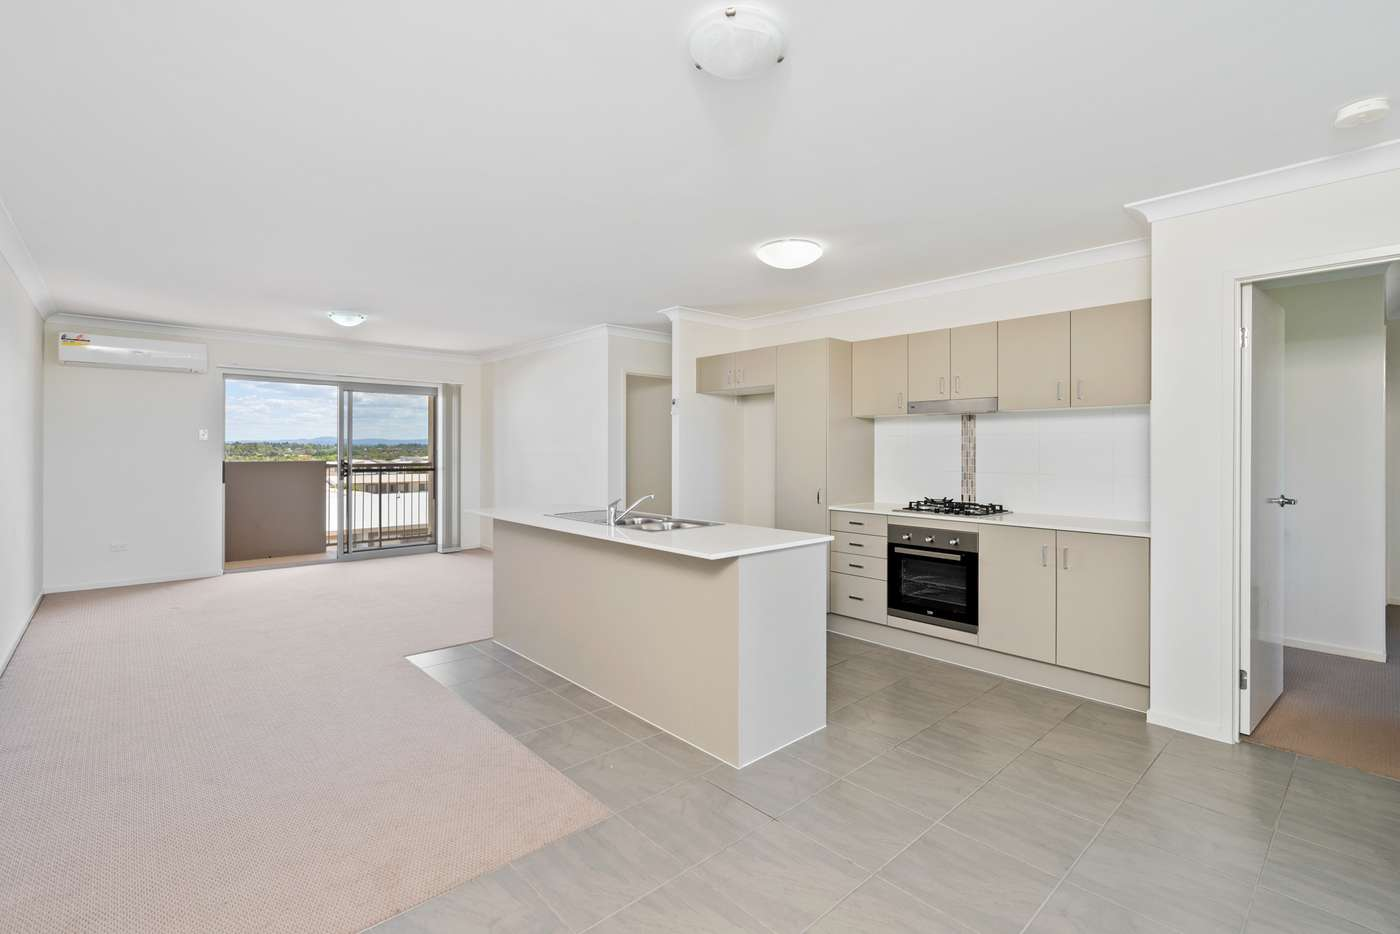 Main view of Homely apartment listing, 1 Linear Drive, Mango Hill QLD 4509